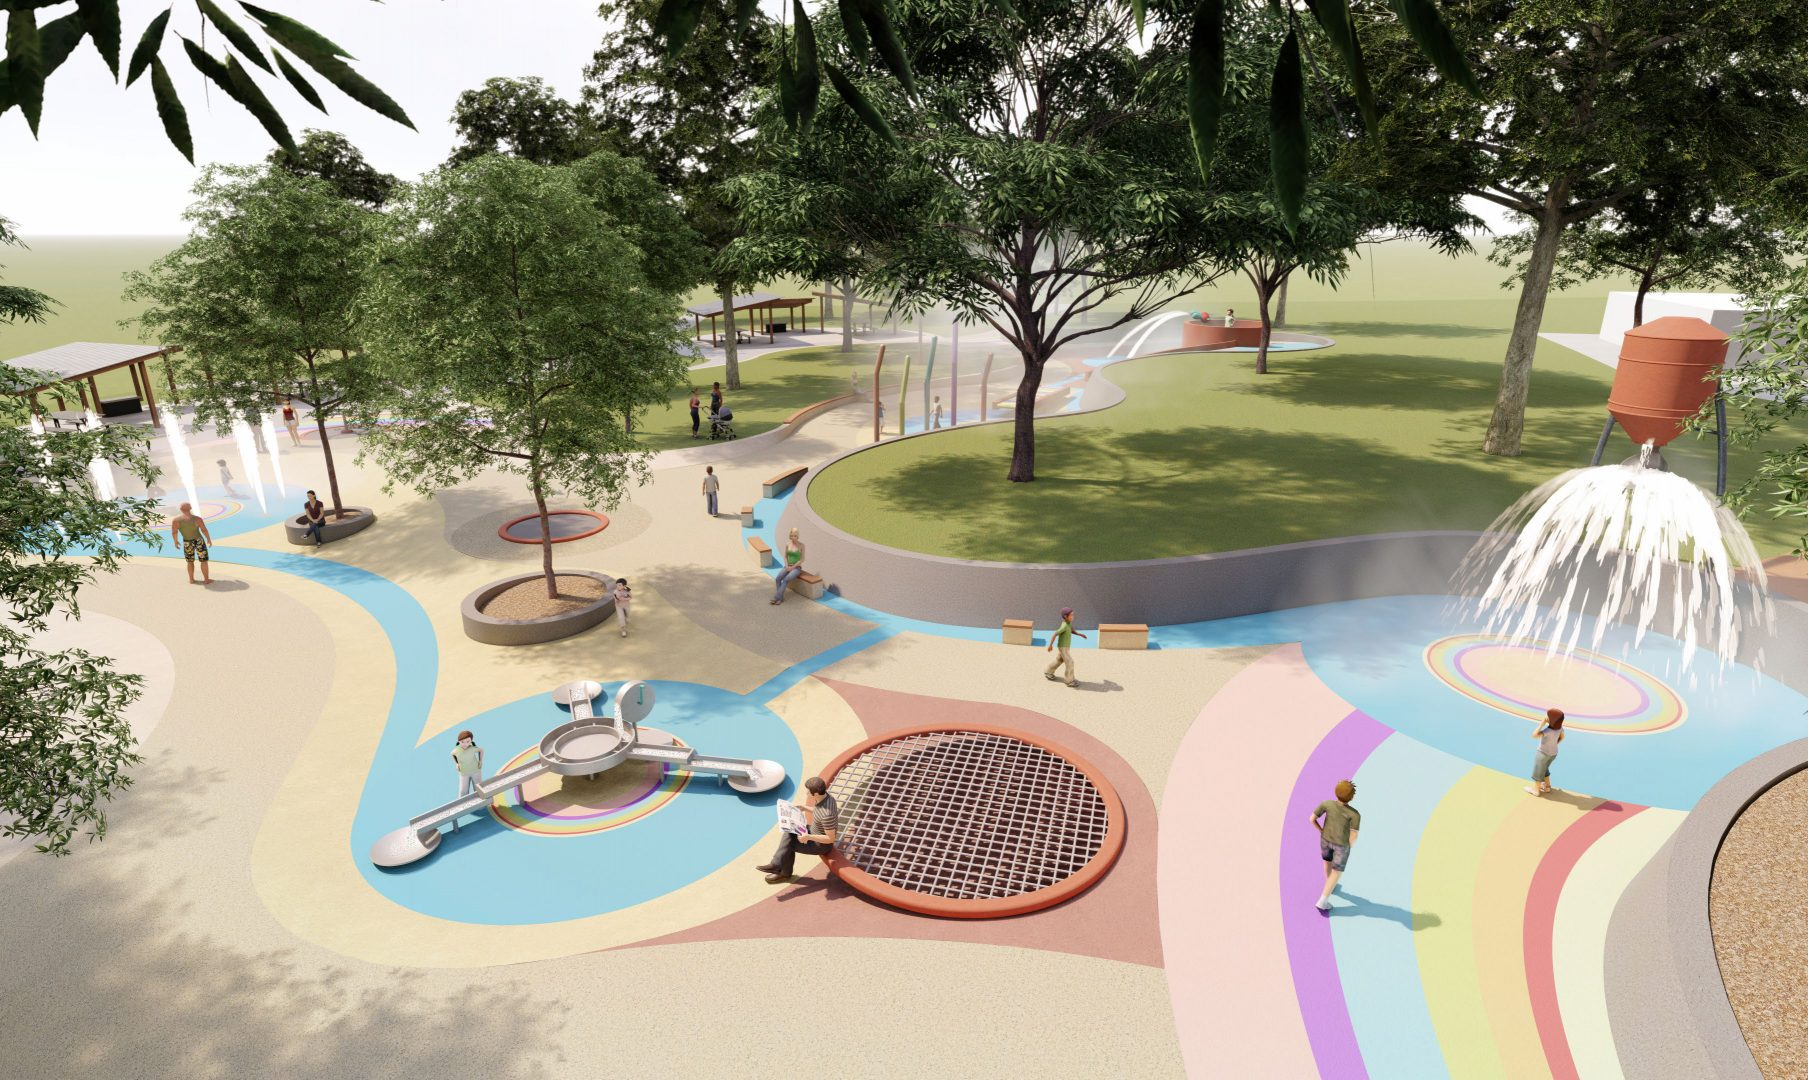 Maryborough water playground to be named 'SplashSide'